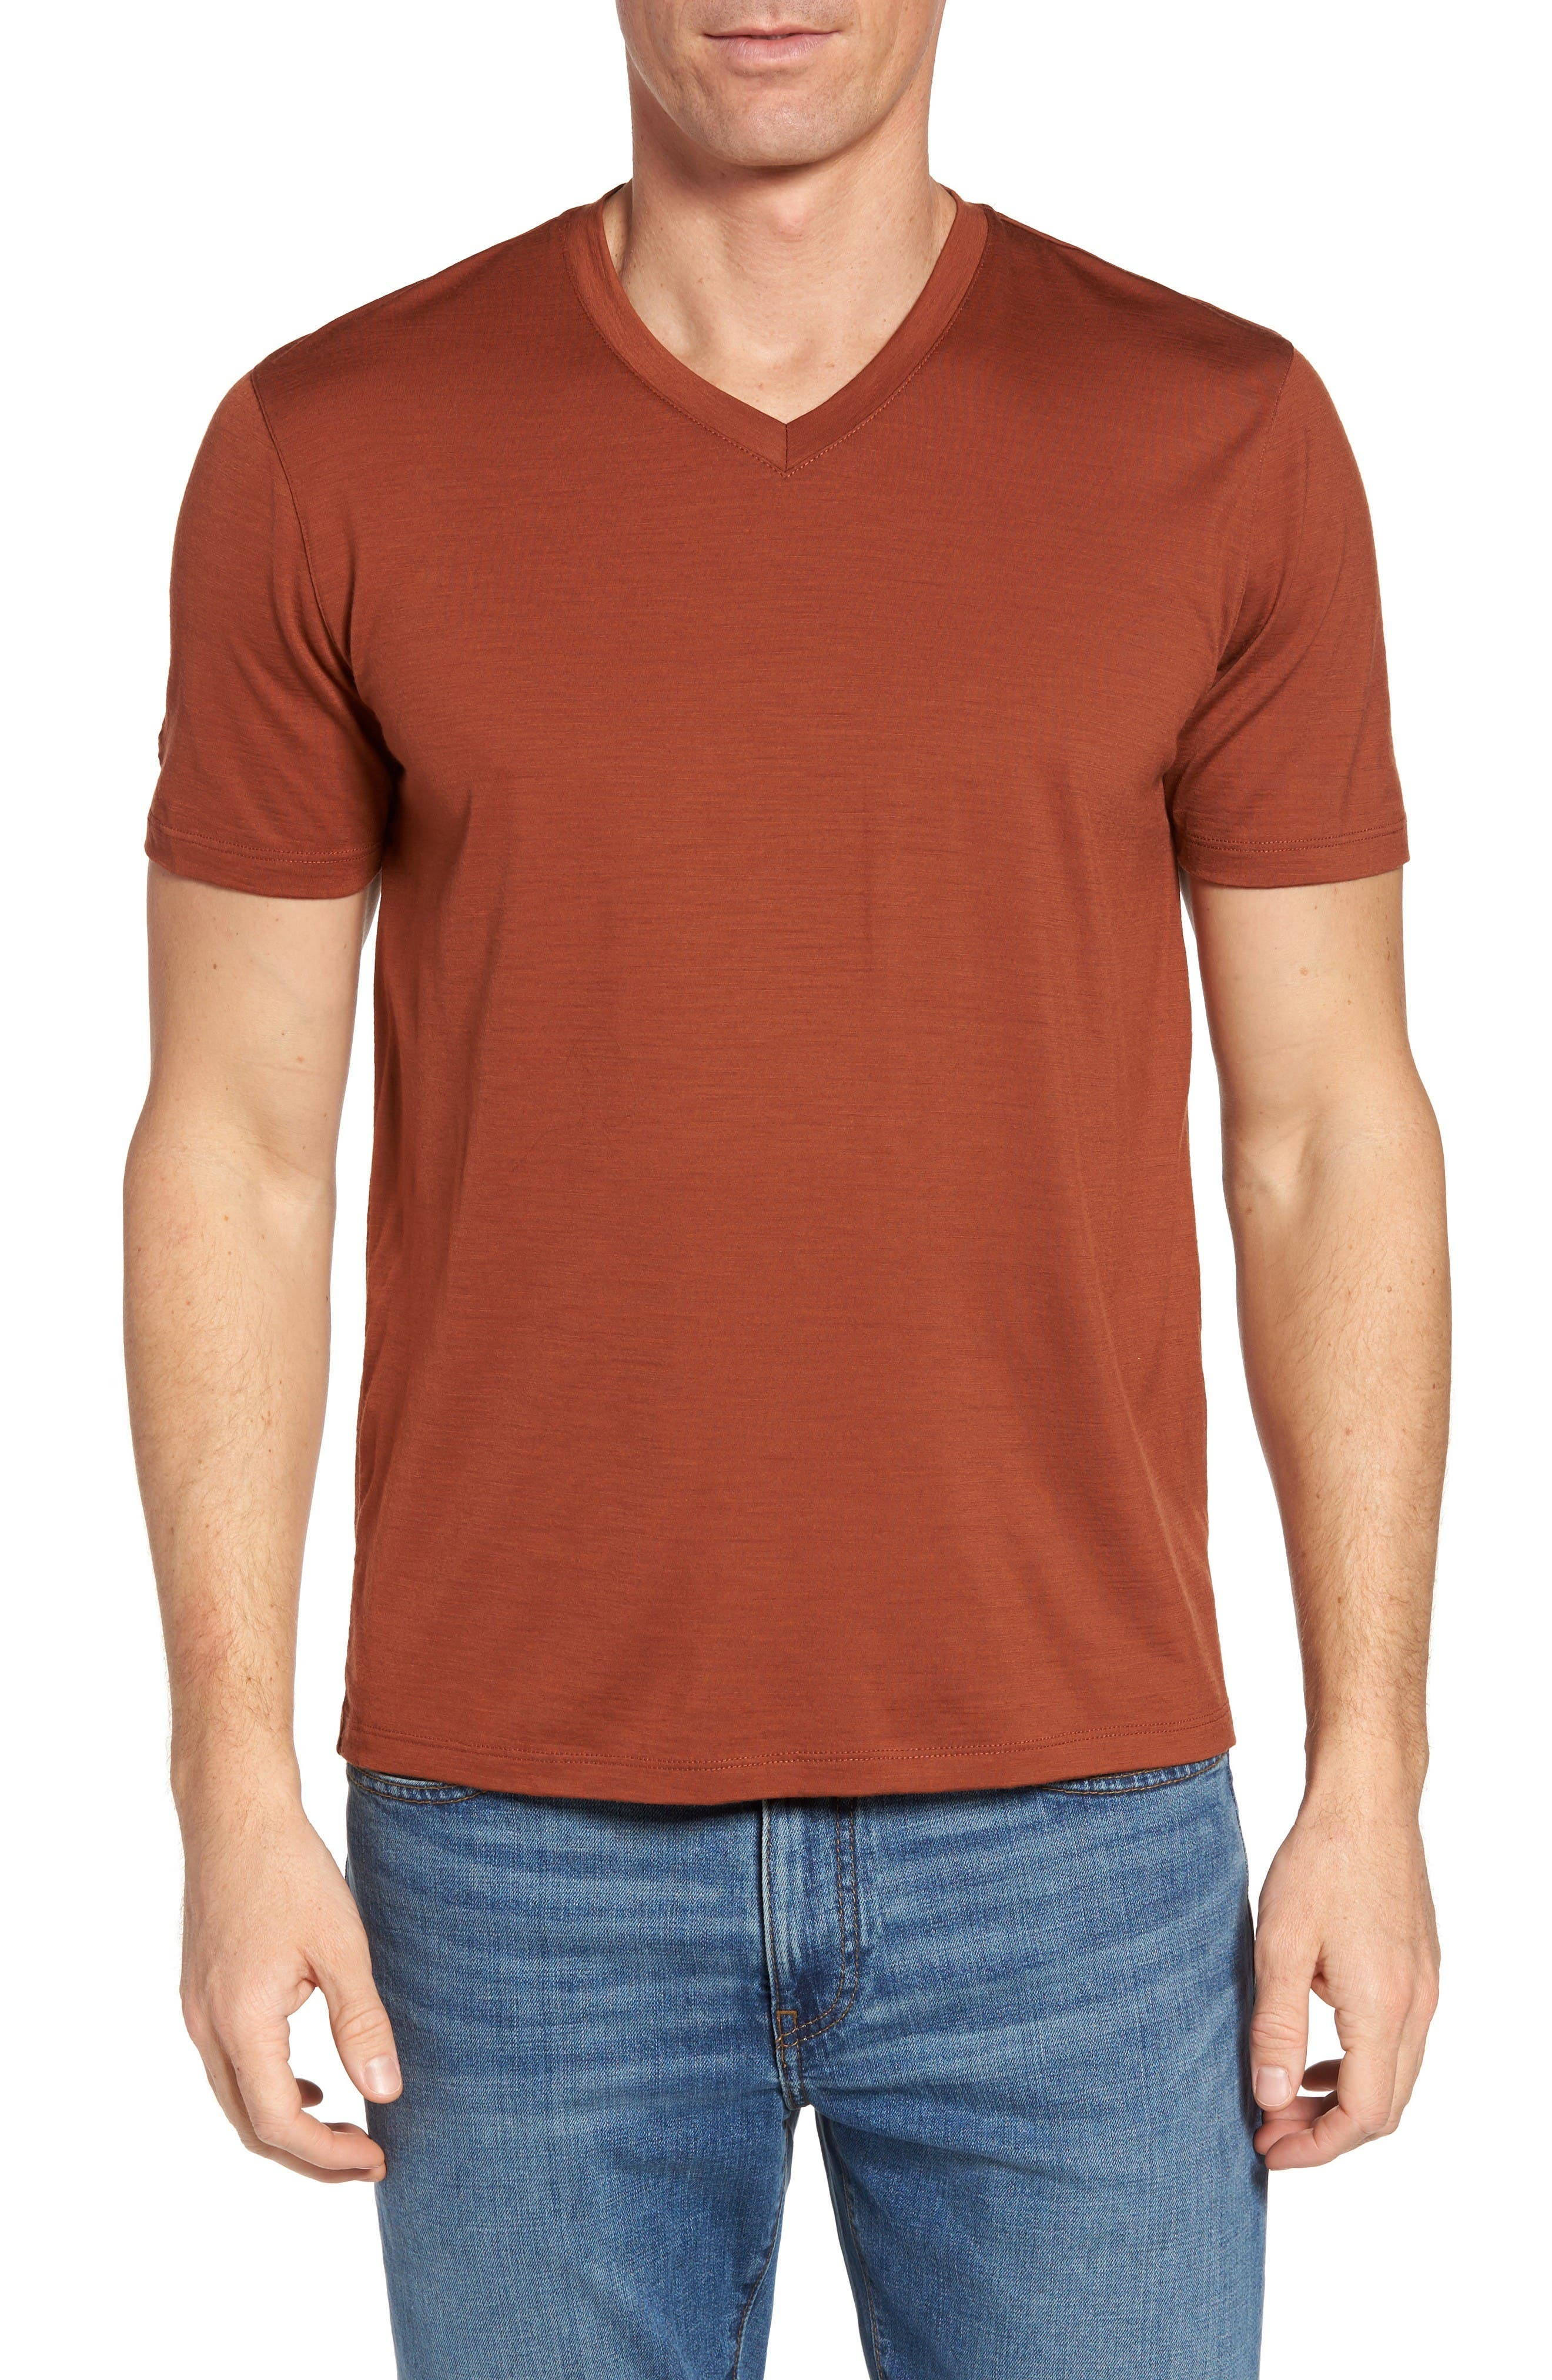 ibex 'Axis' V-Neck Merino Wool Jersey T-Shirt